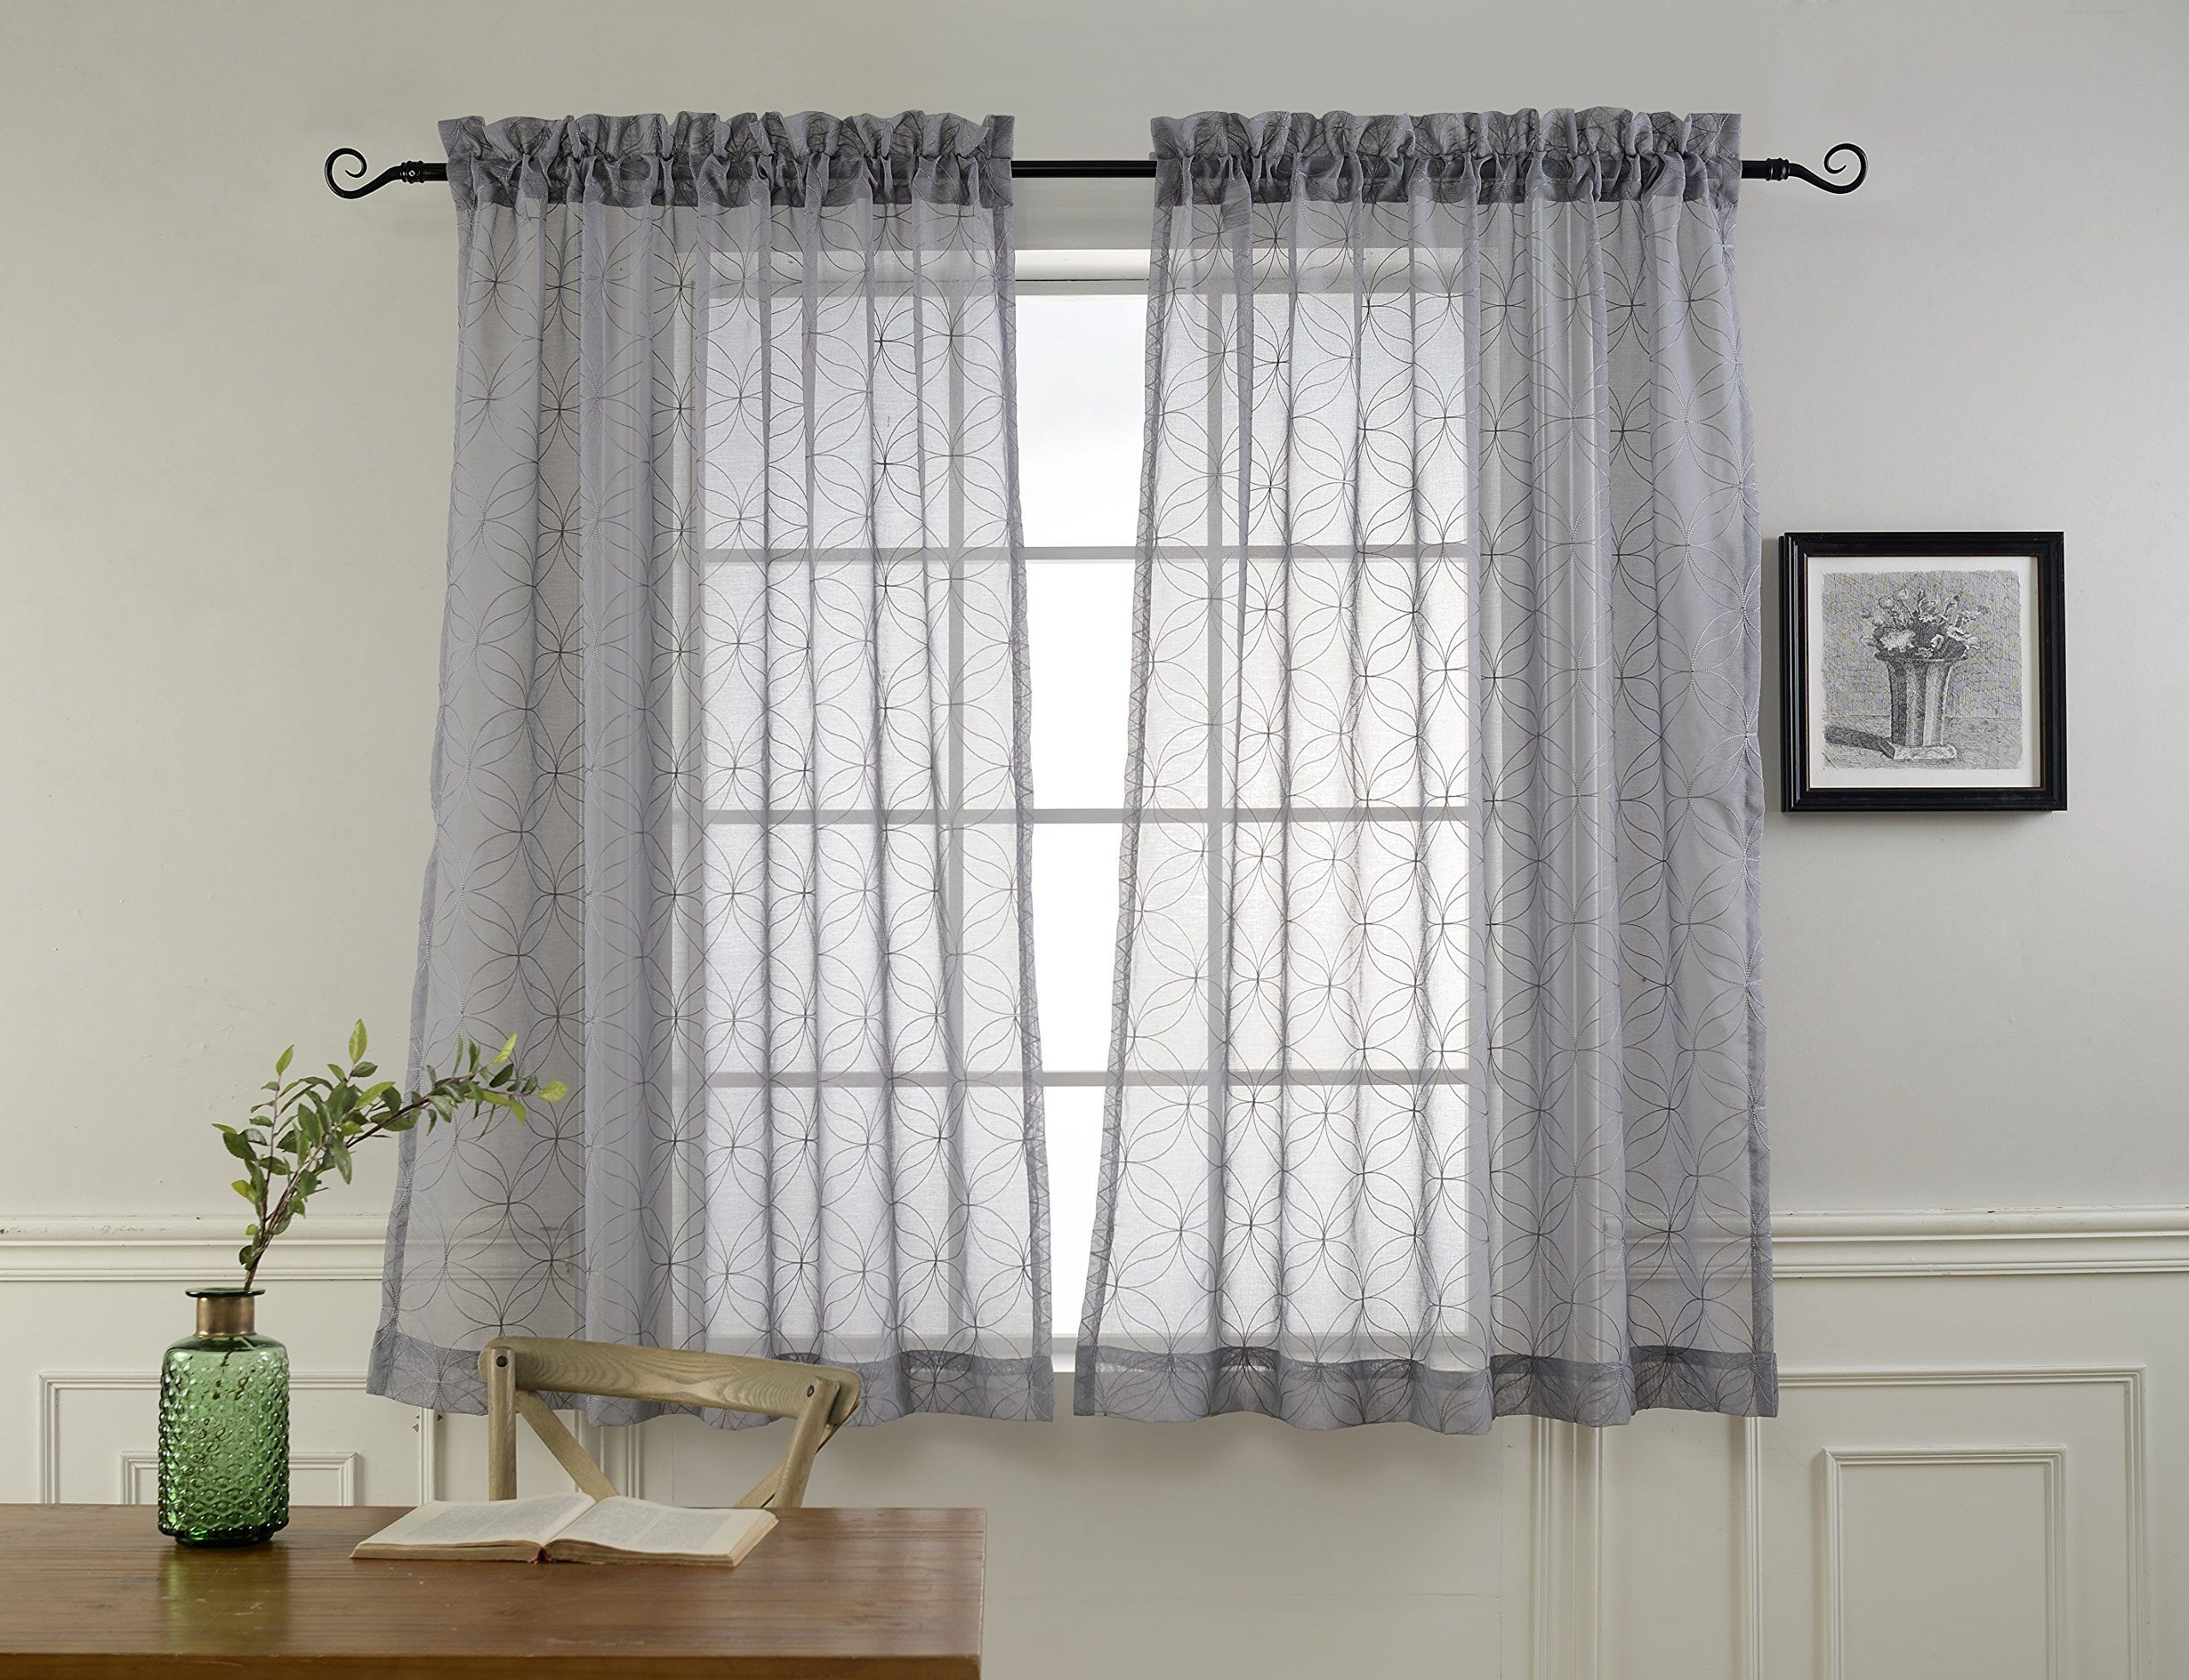 Rod Pocket Sheer Curtains For Bedroom By Mysky Home Embroidery